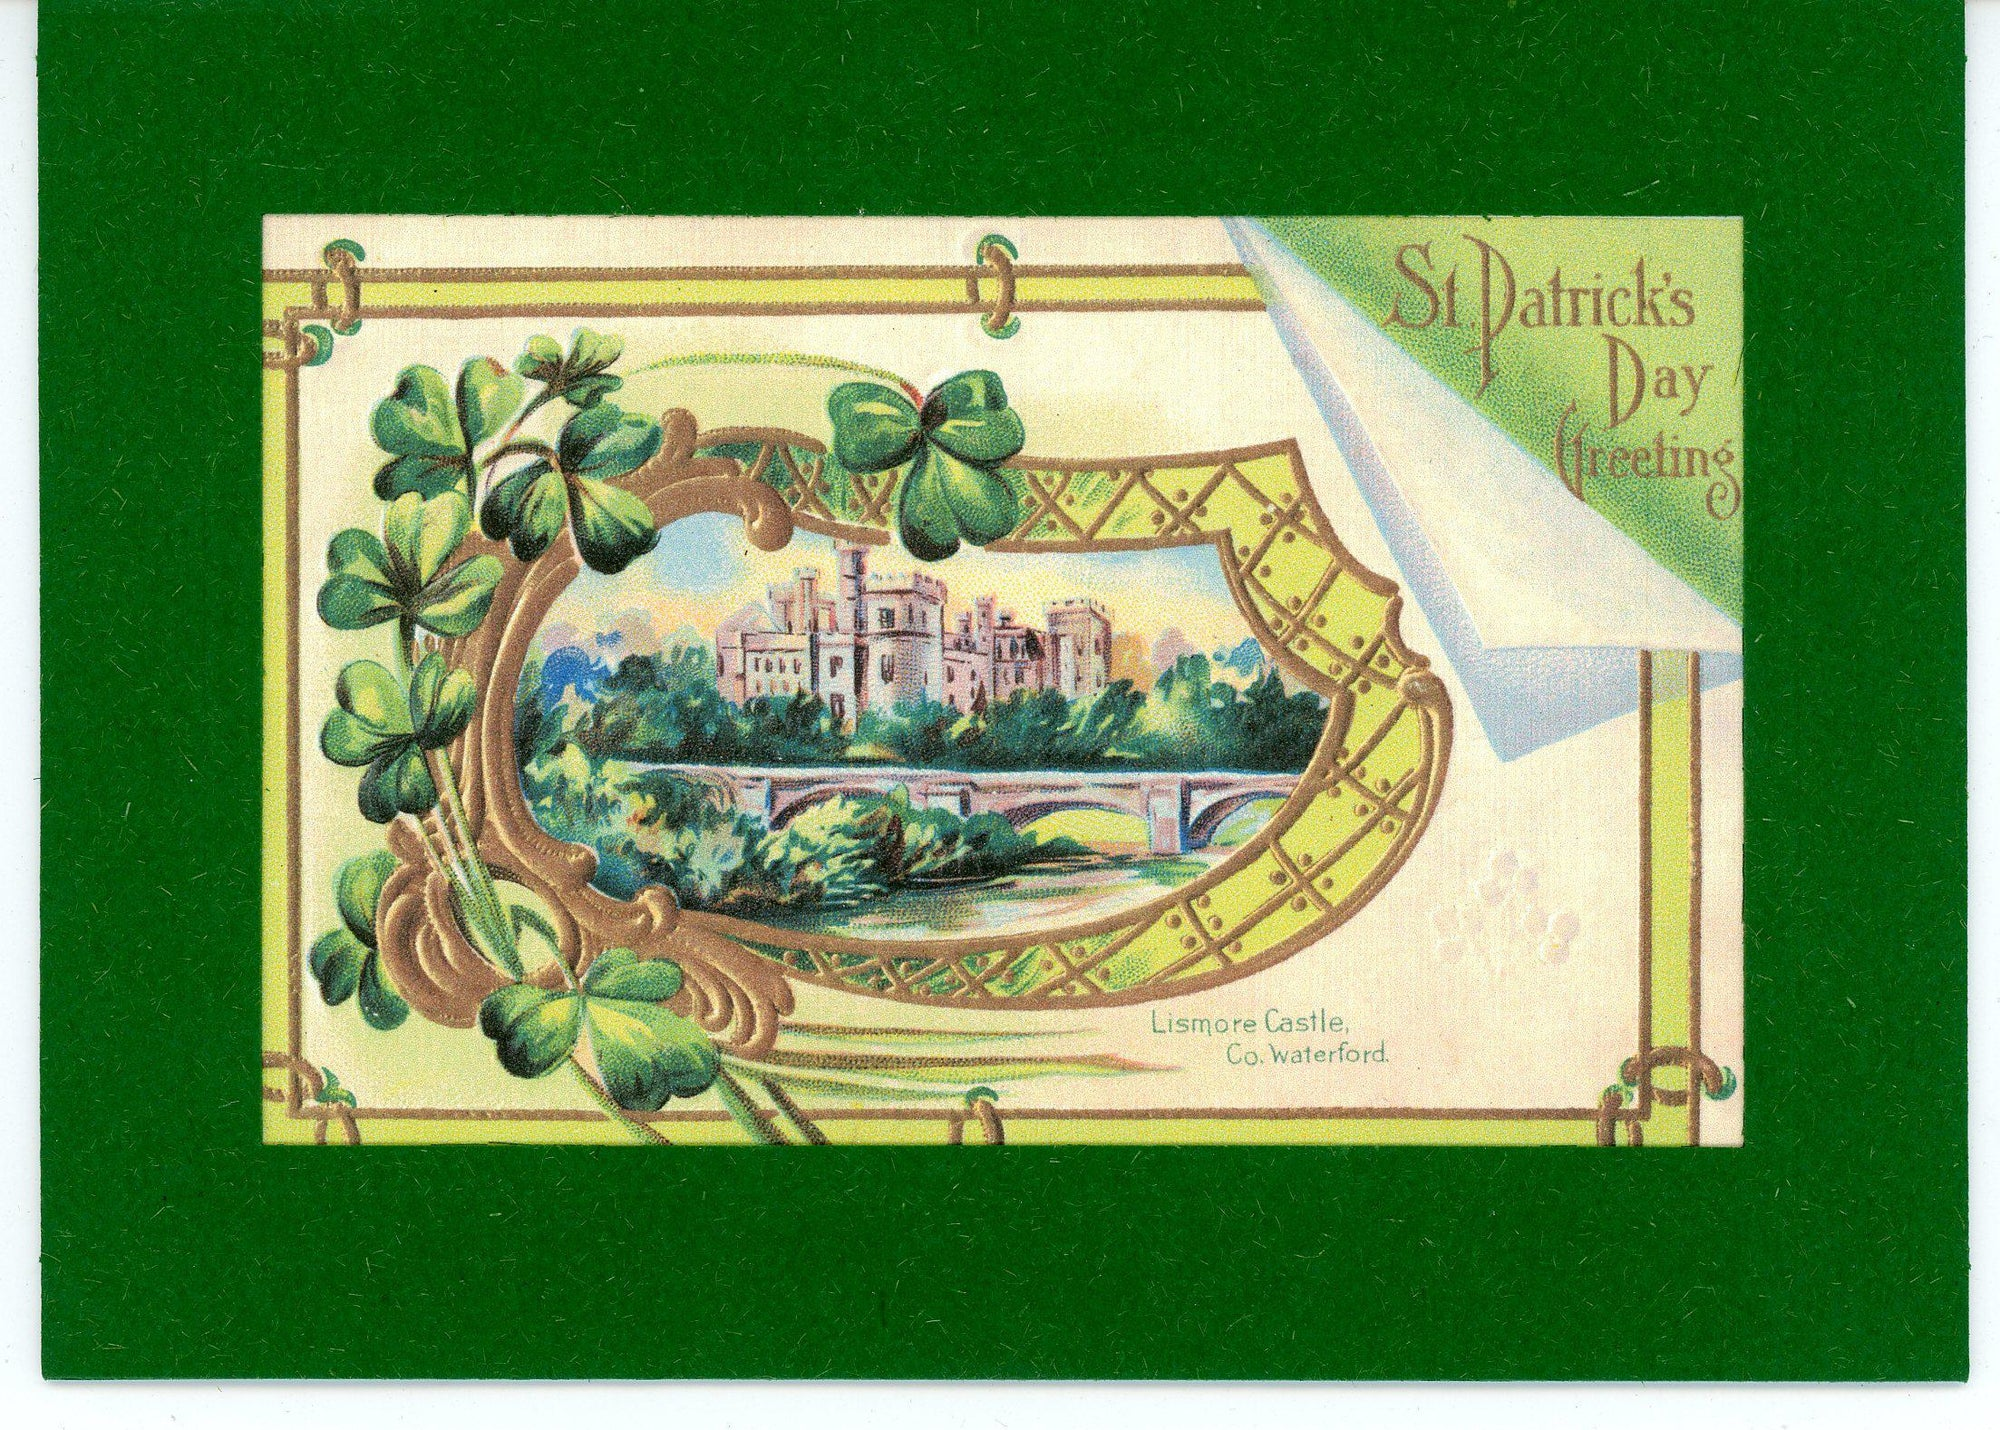 St. Patrick's Day ~ Greeting-Greetings from the Past-Plymouth Cards